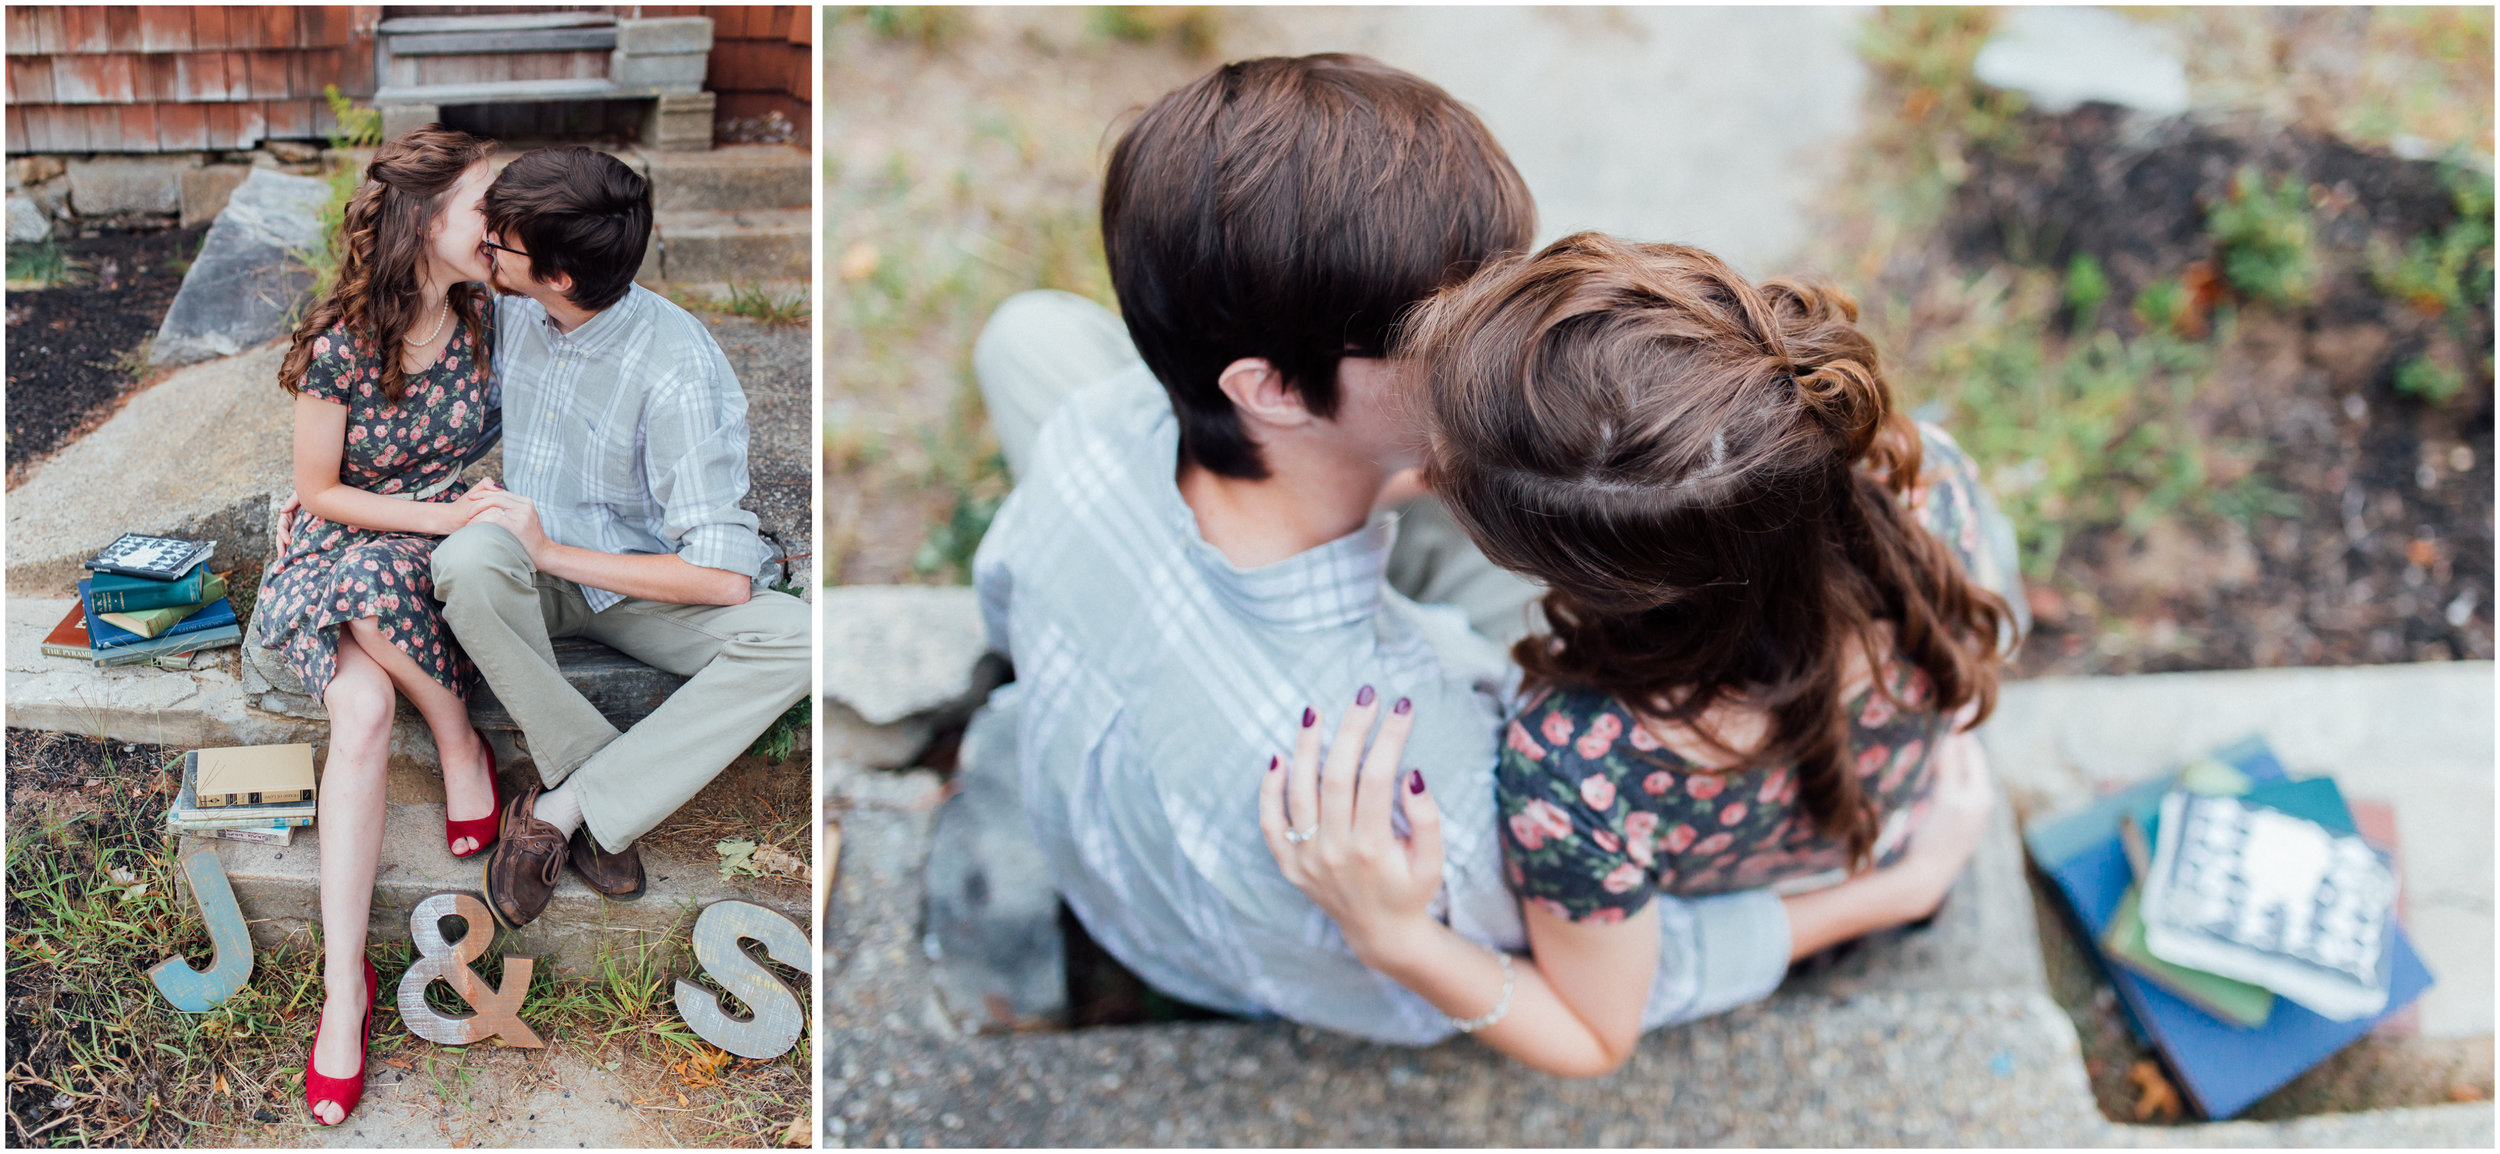 Cute engagement photography in Merrimack, New Hampshire